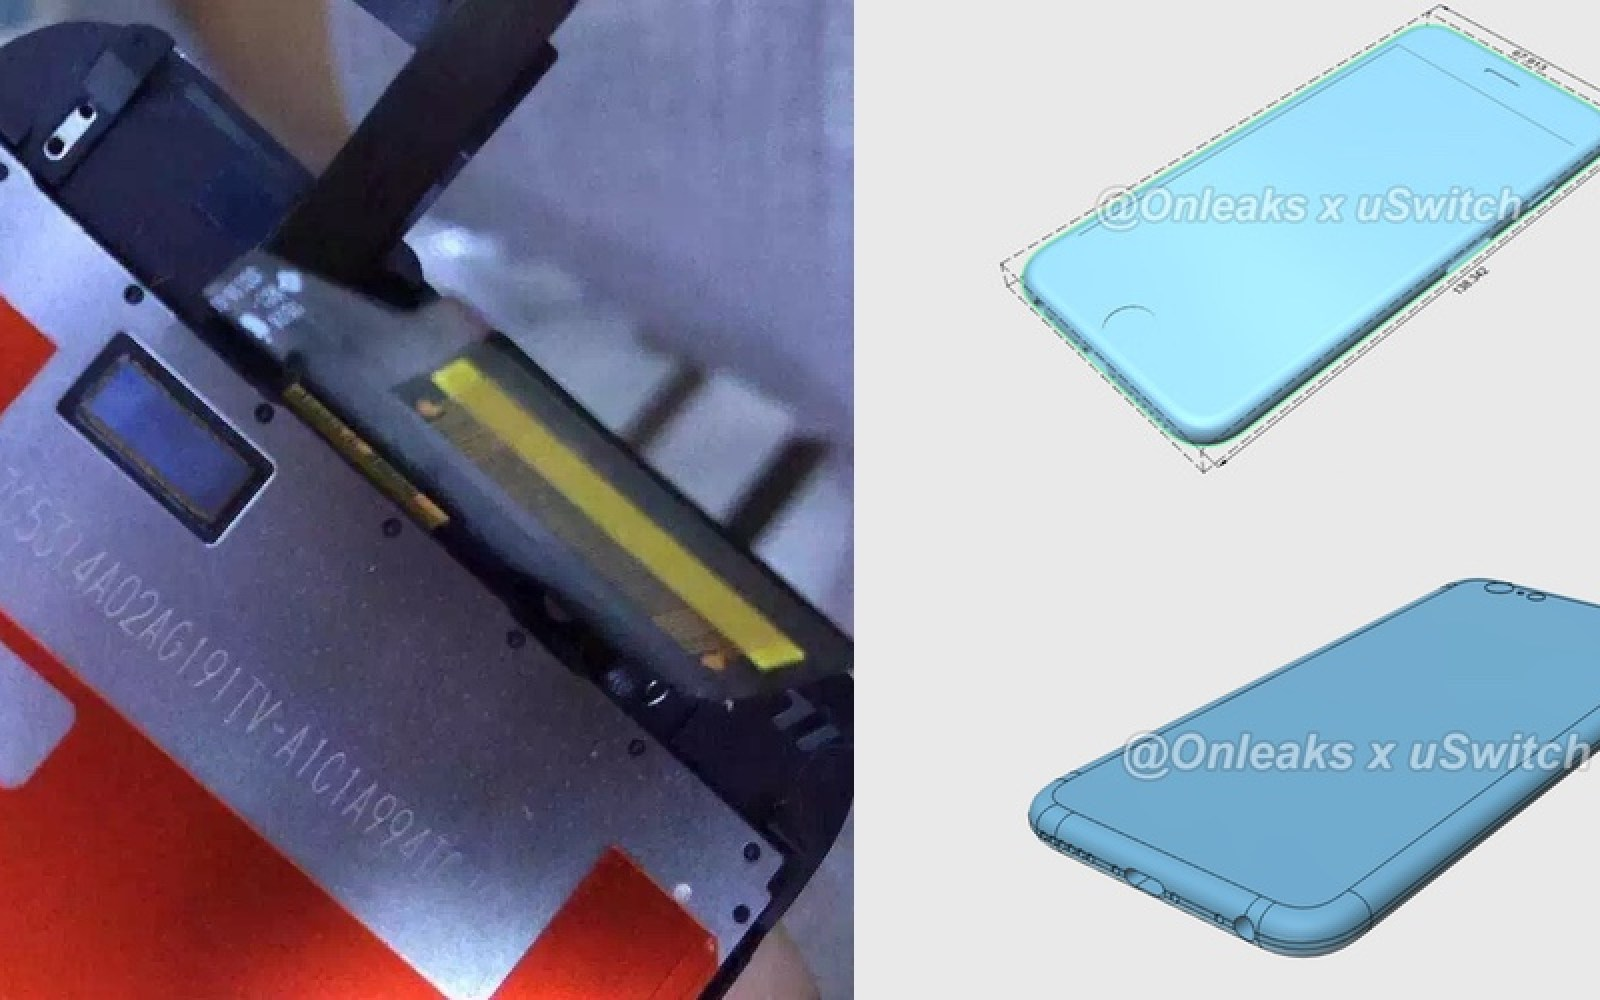 Purported iPhone 6s screen panels leak showing Force Touch, renders suggest 0.2mm thicker casing